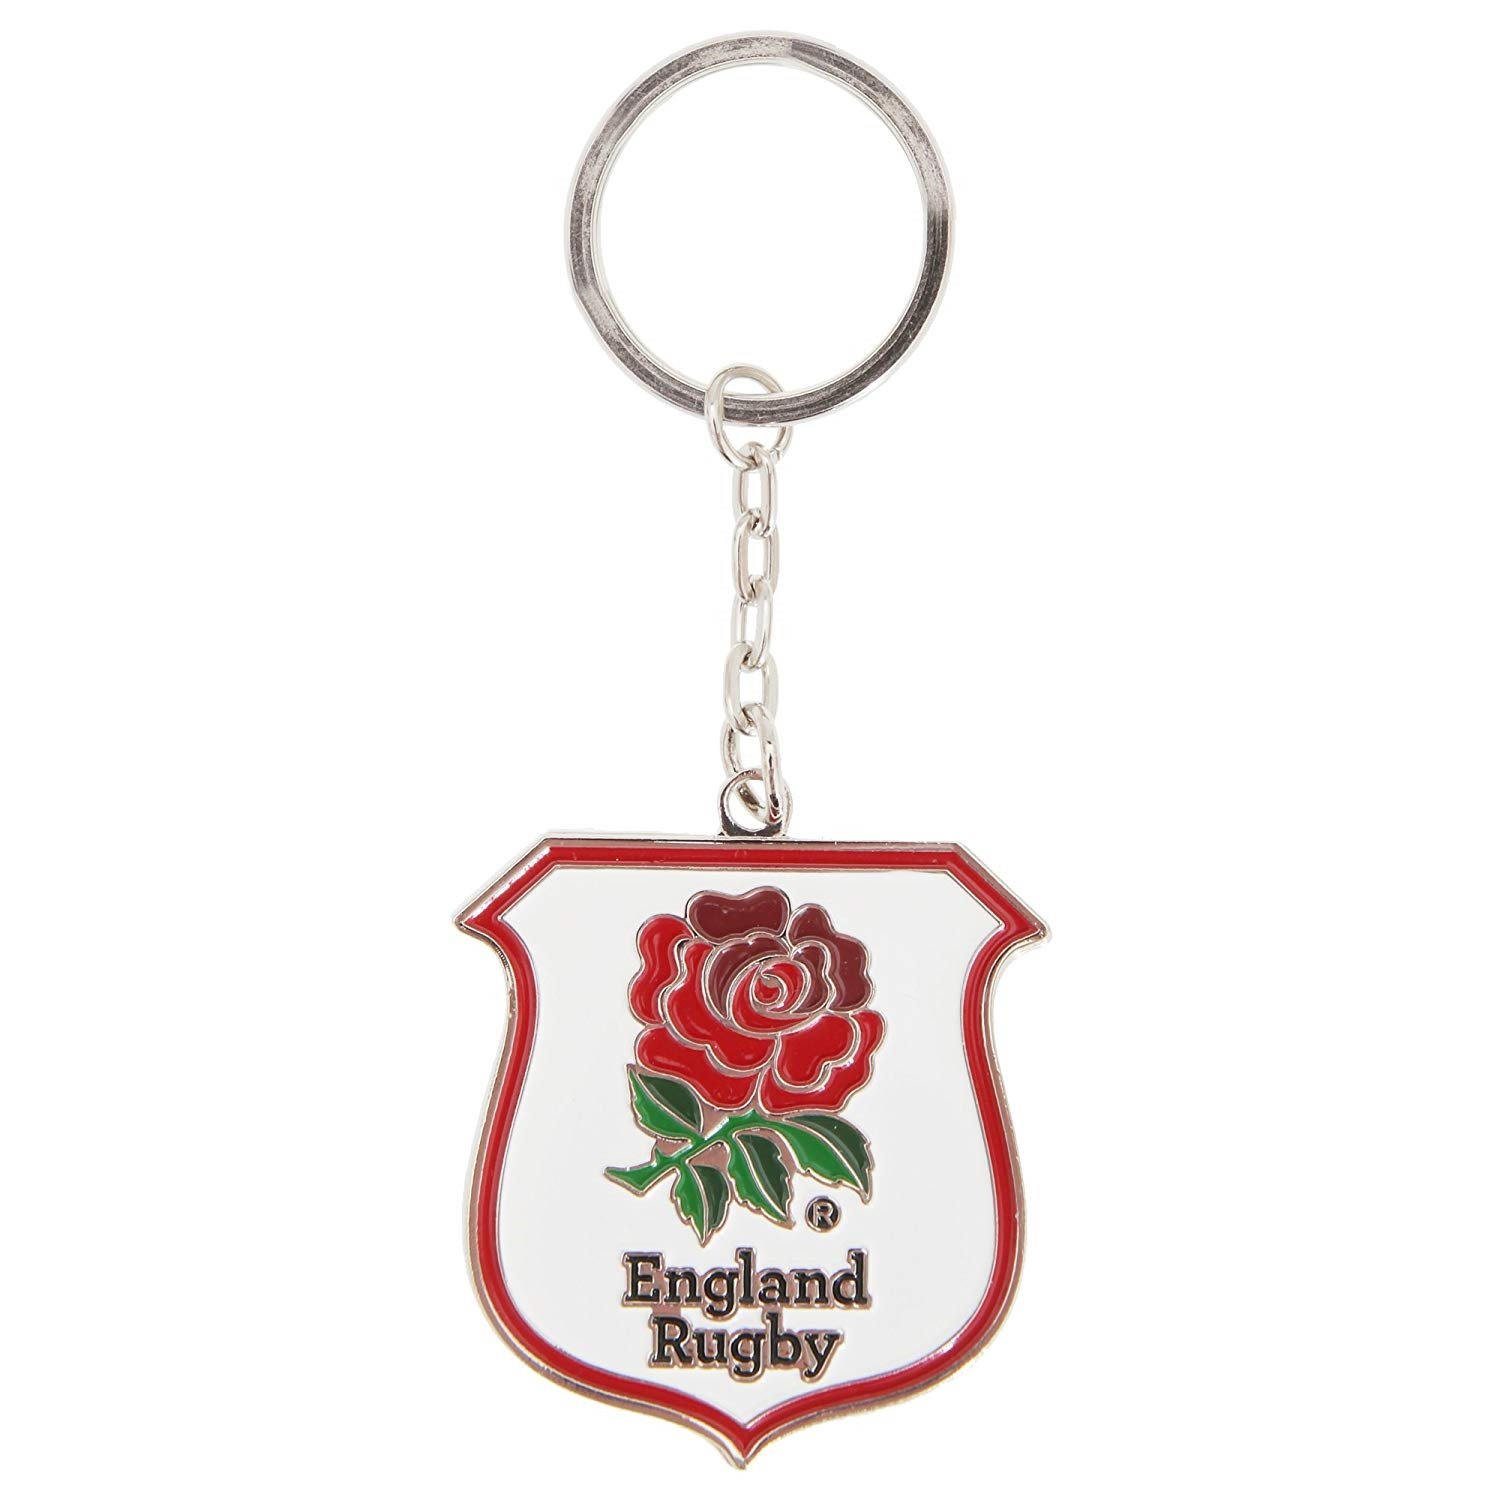 England RFU Rugby Crest Keyring (One Size) (White/Red)